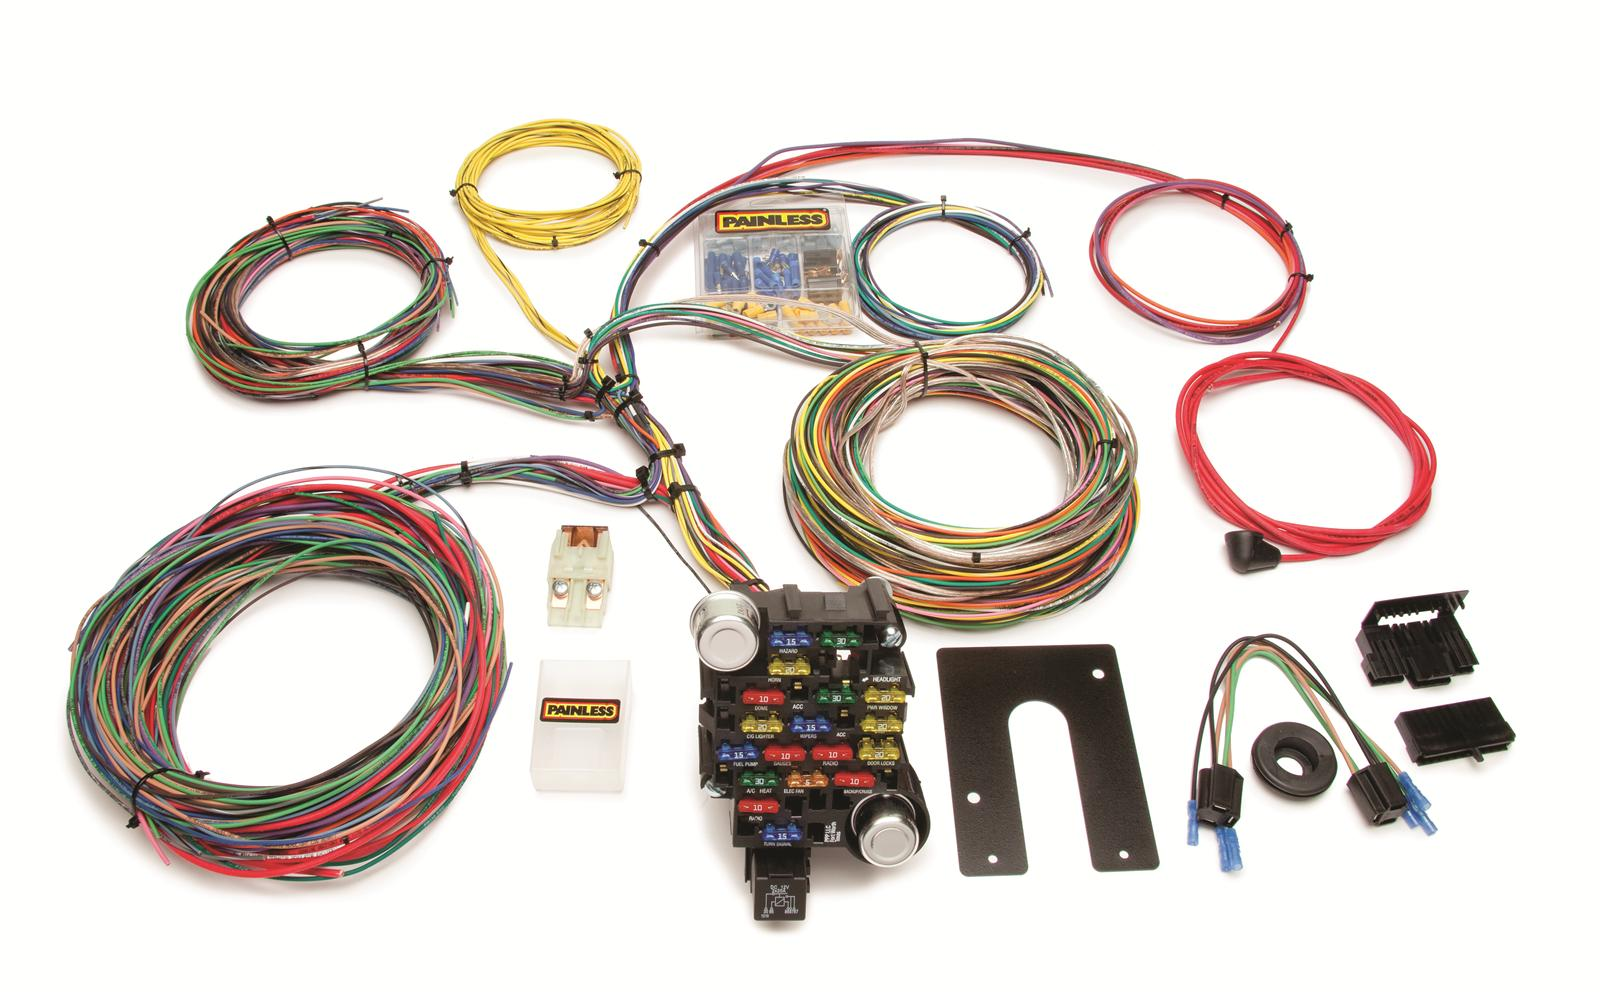 painless performance 28 circuit universal harnesses 10202 free rh summitracing com Easy Wiring Harness 22 Circuit Wiring Harness